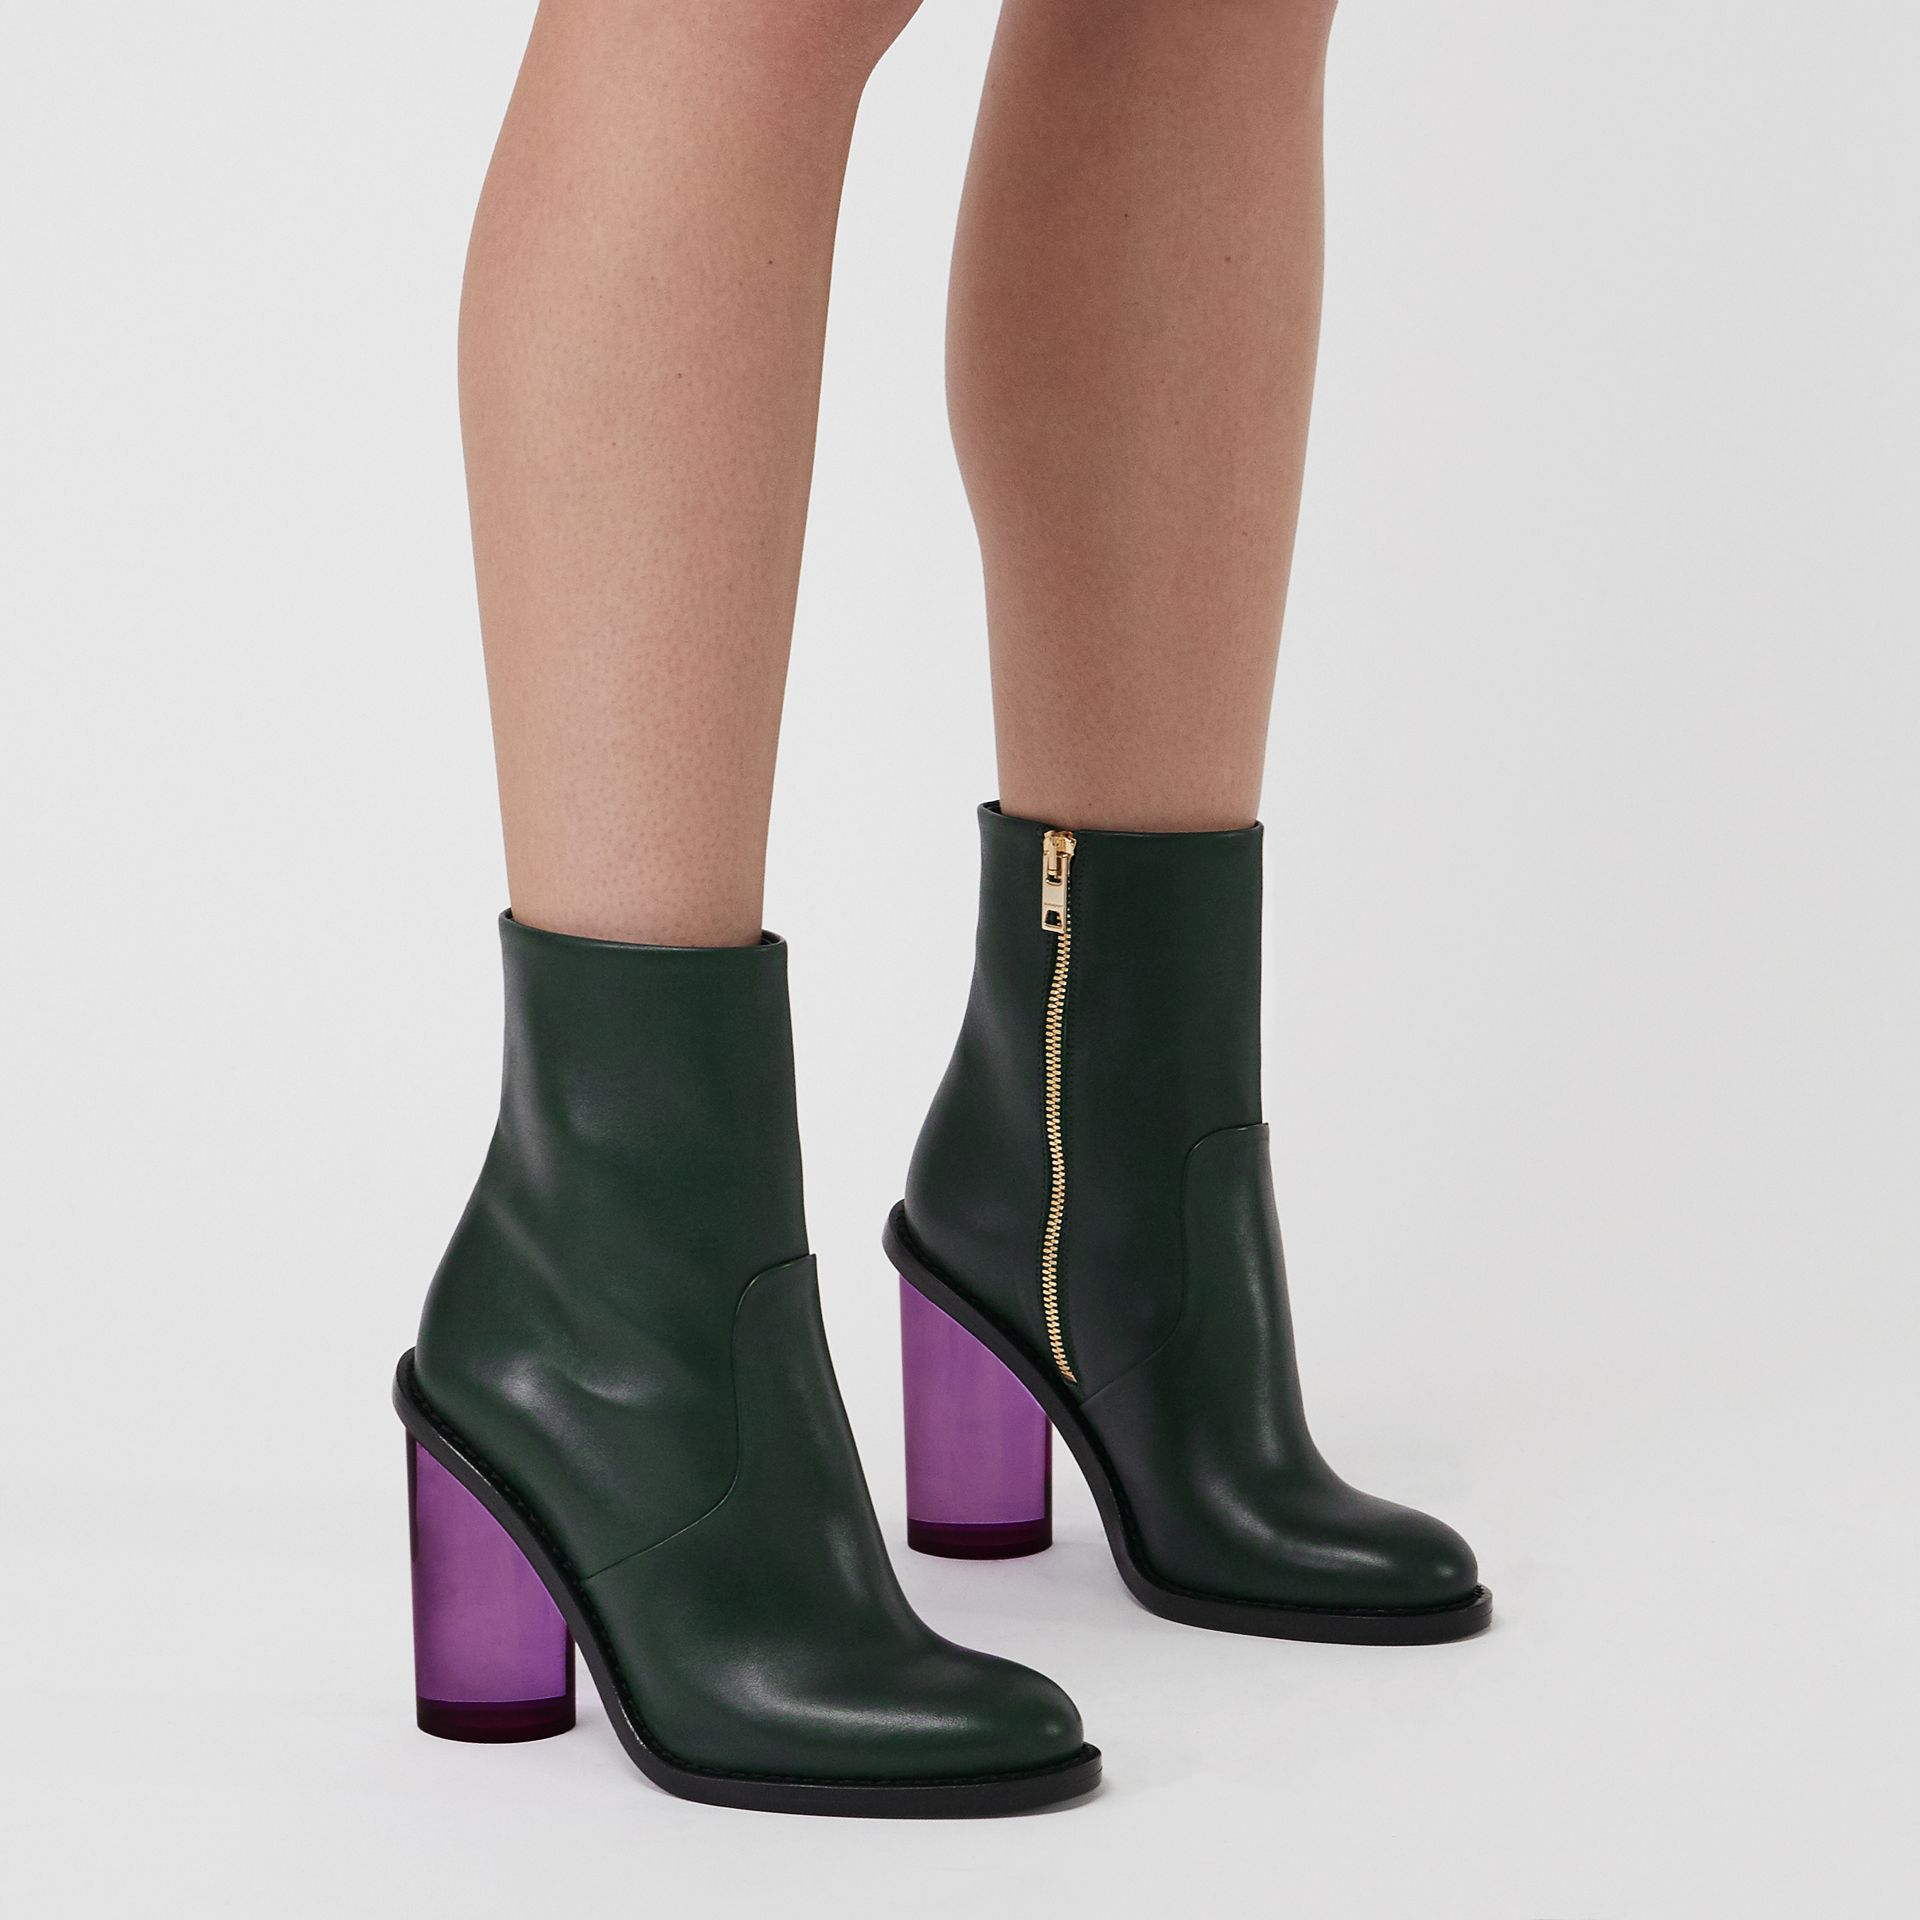 Bottines à talon bottier haut en cuir bicolore (Vert Forêt Sombre) - Femme | Burberry - photo de la galerie 2